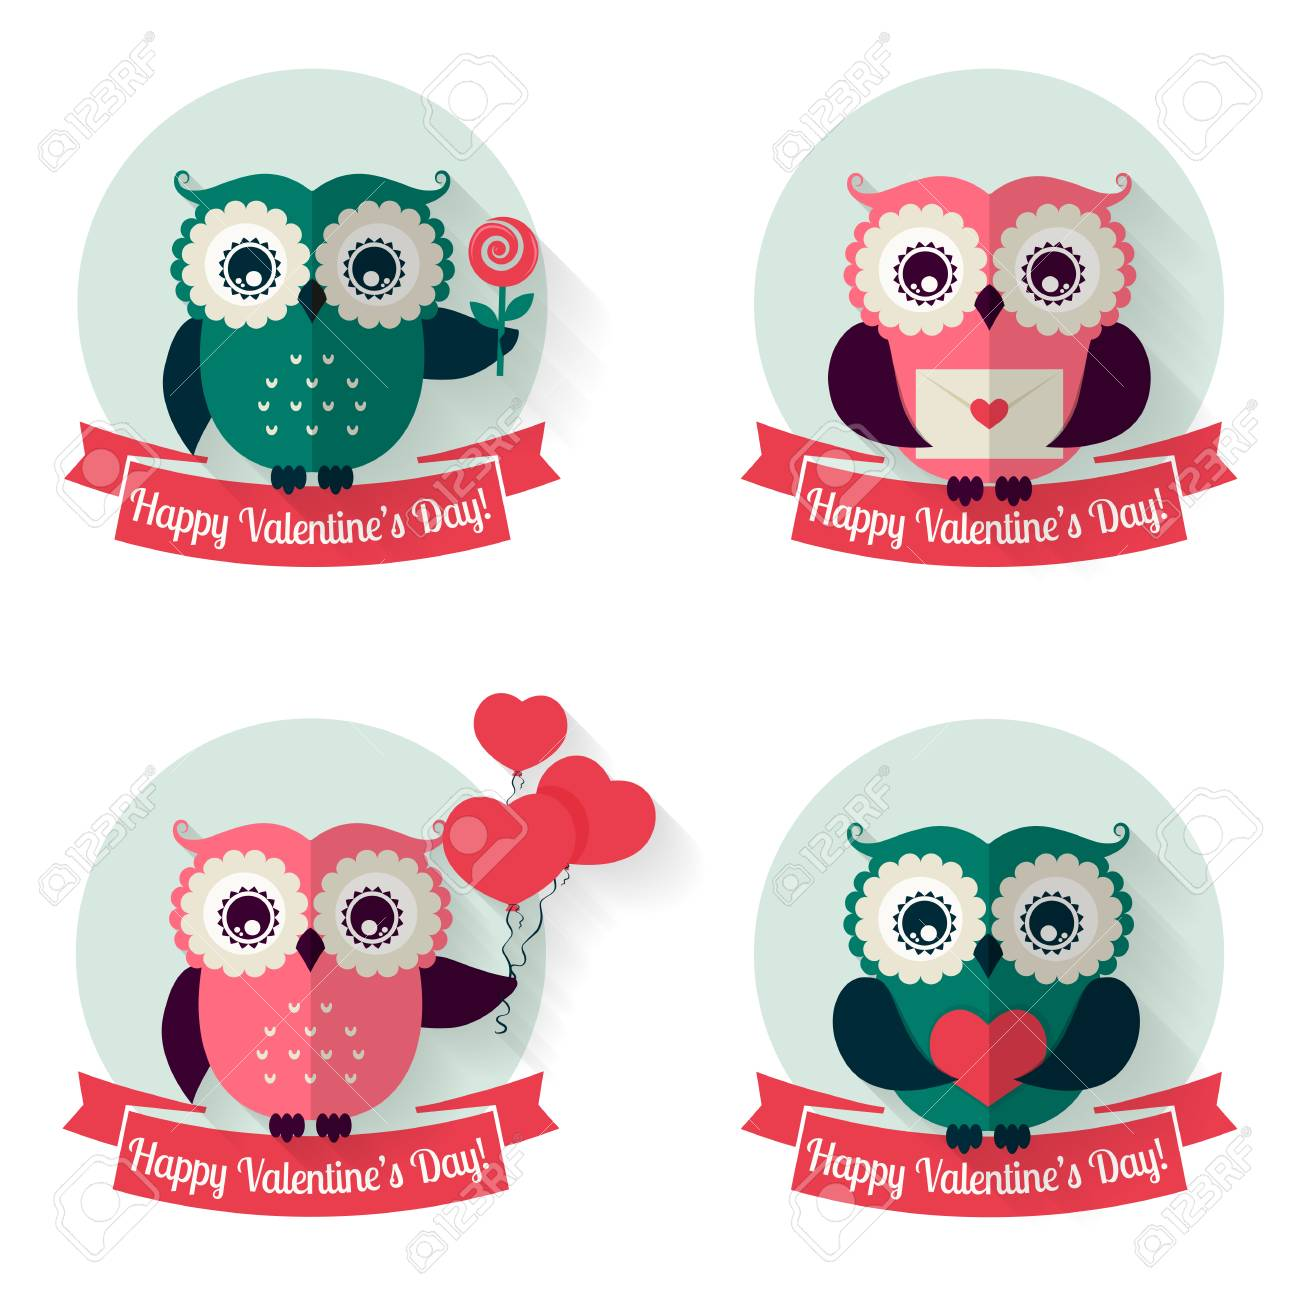 happy valentine's day! set of labels with cute owls and ribbons